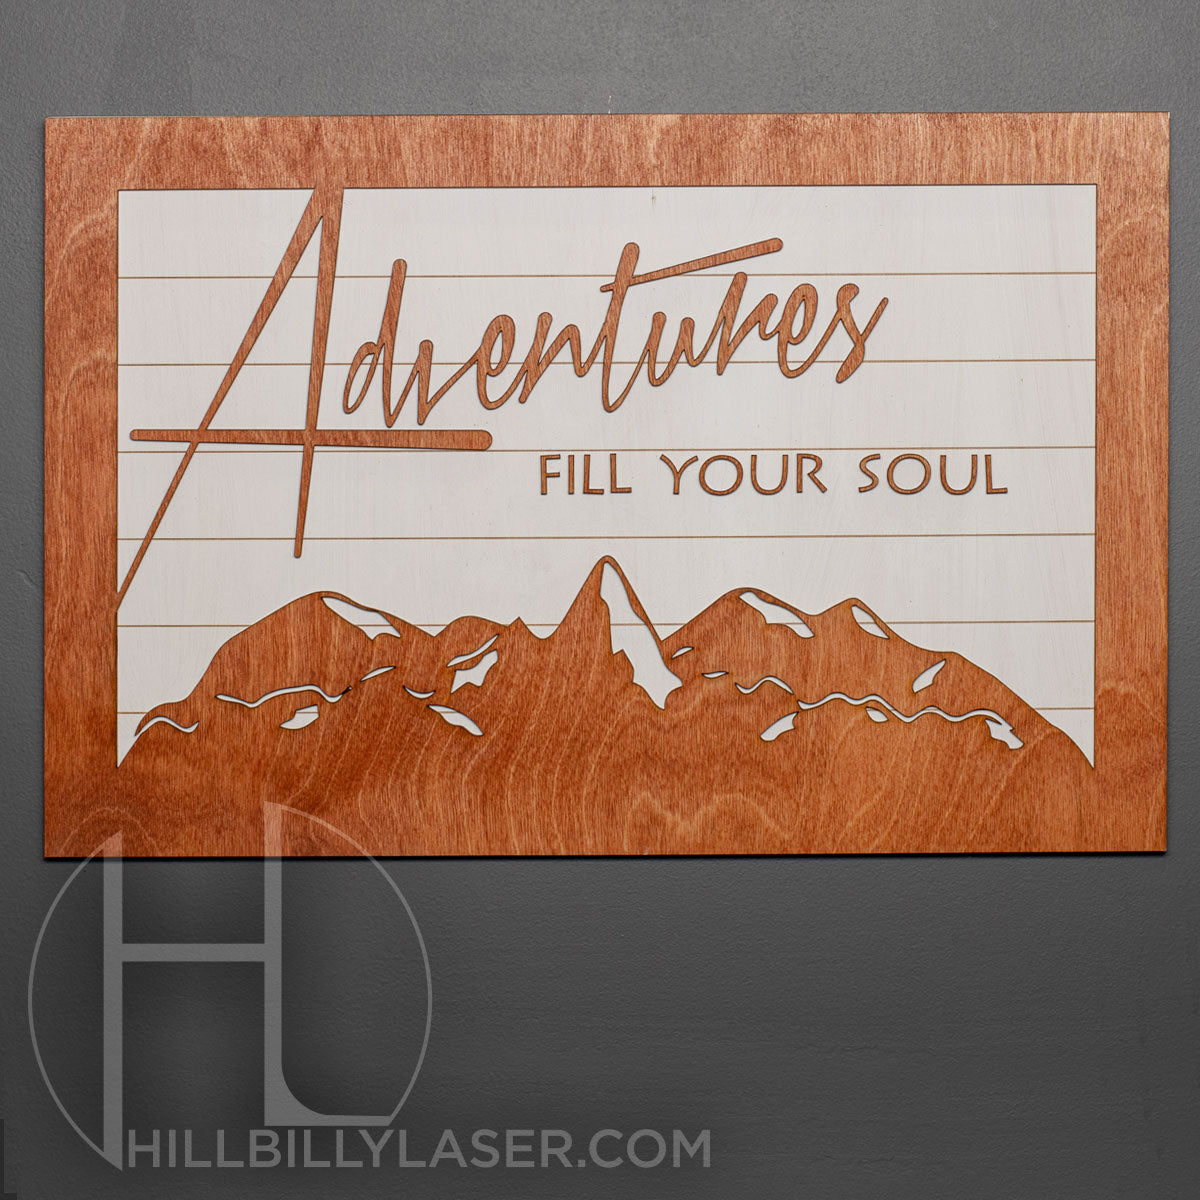 Adventures Fill Your Soul - Hillbilly Laser